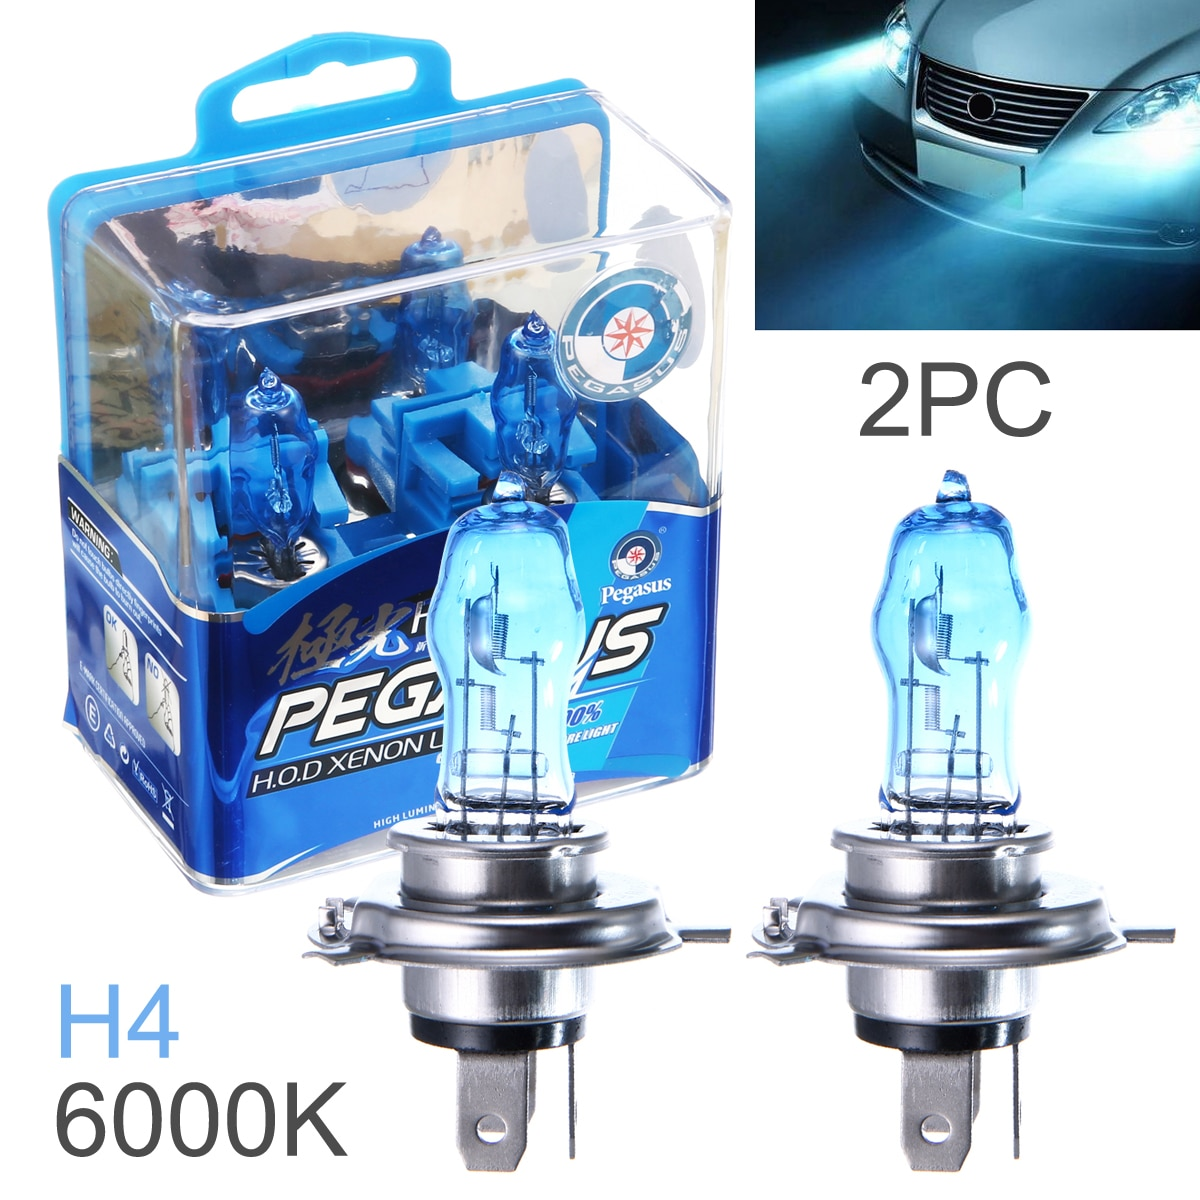 2 Pcs DC 12V H4 100W 6000K White Light Super Bright Car HOD Halogen Bulbs Auto Front Headlight Lamp External Lights for Cars